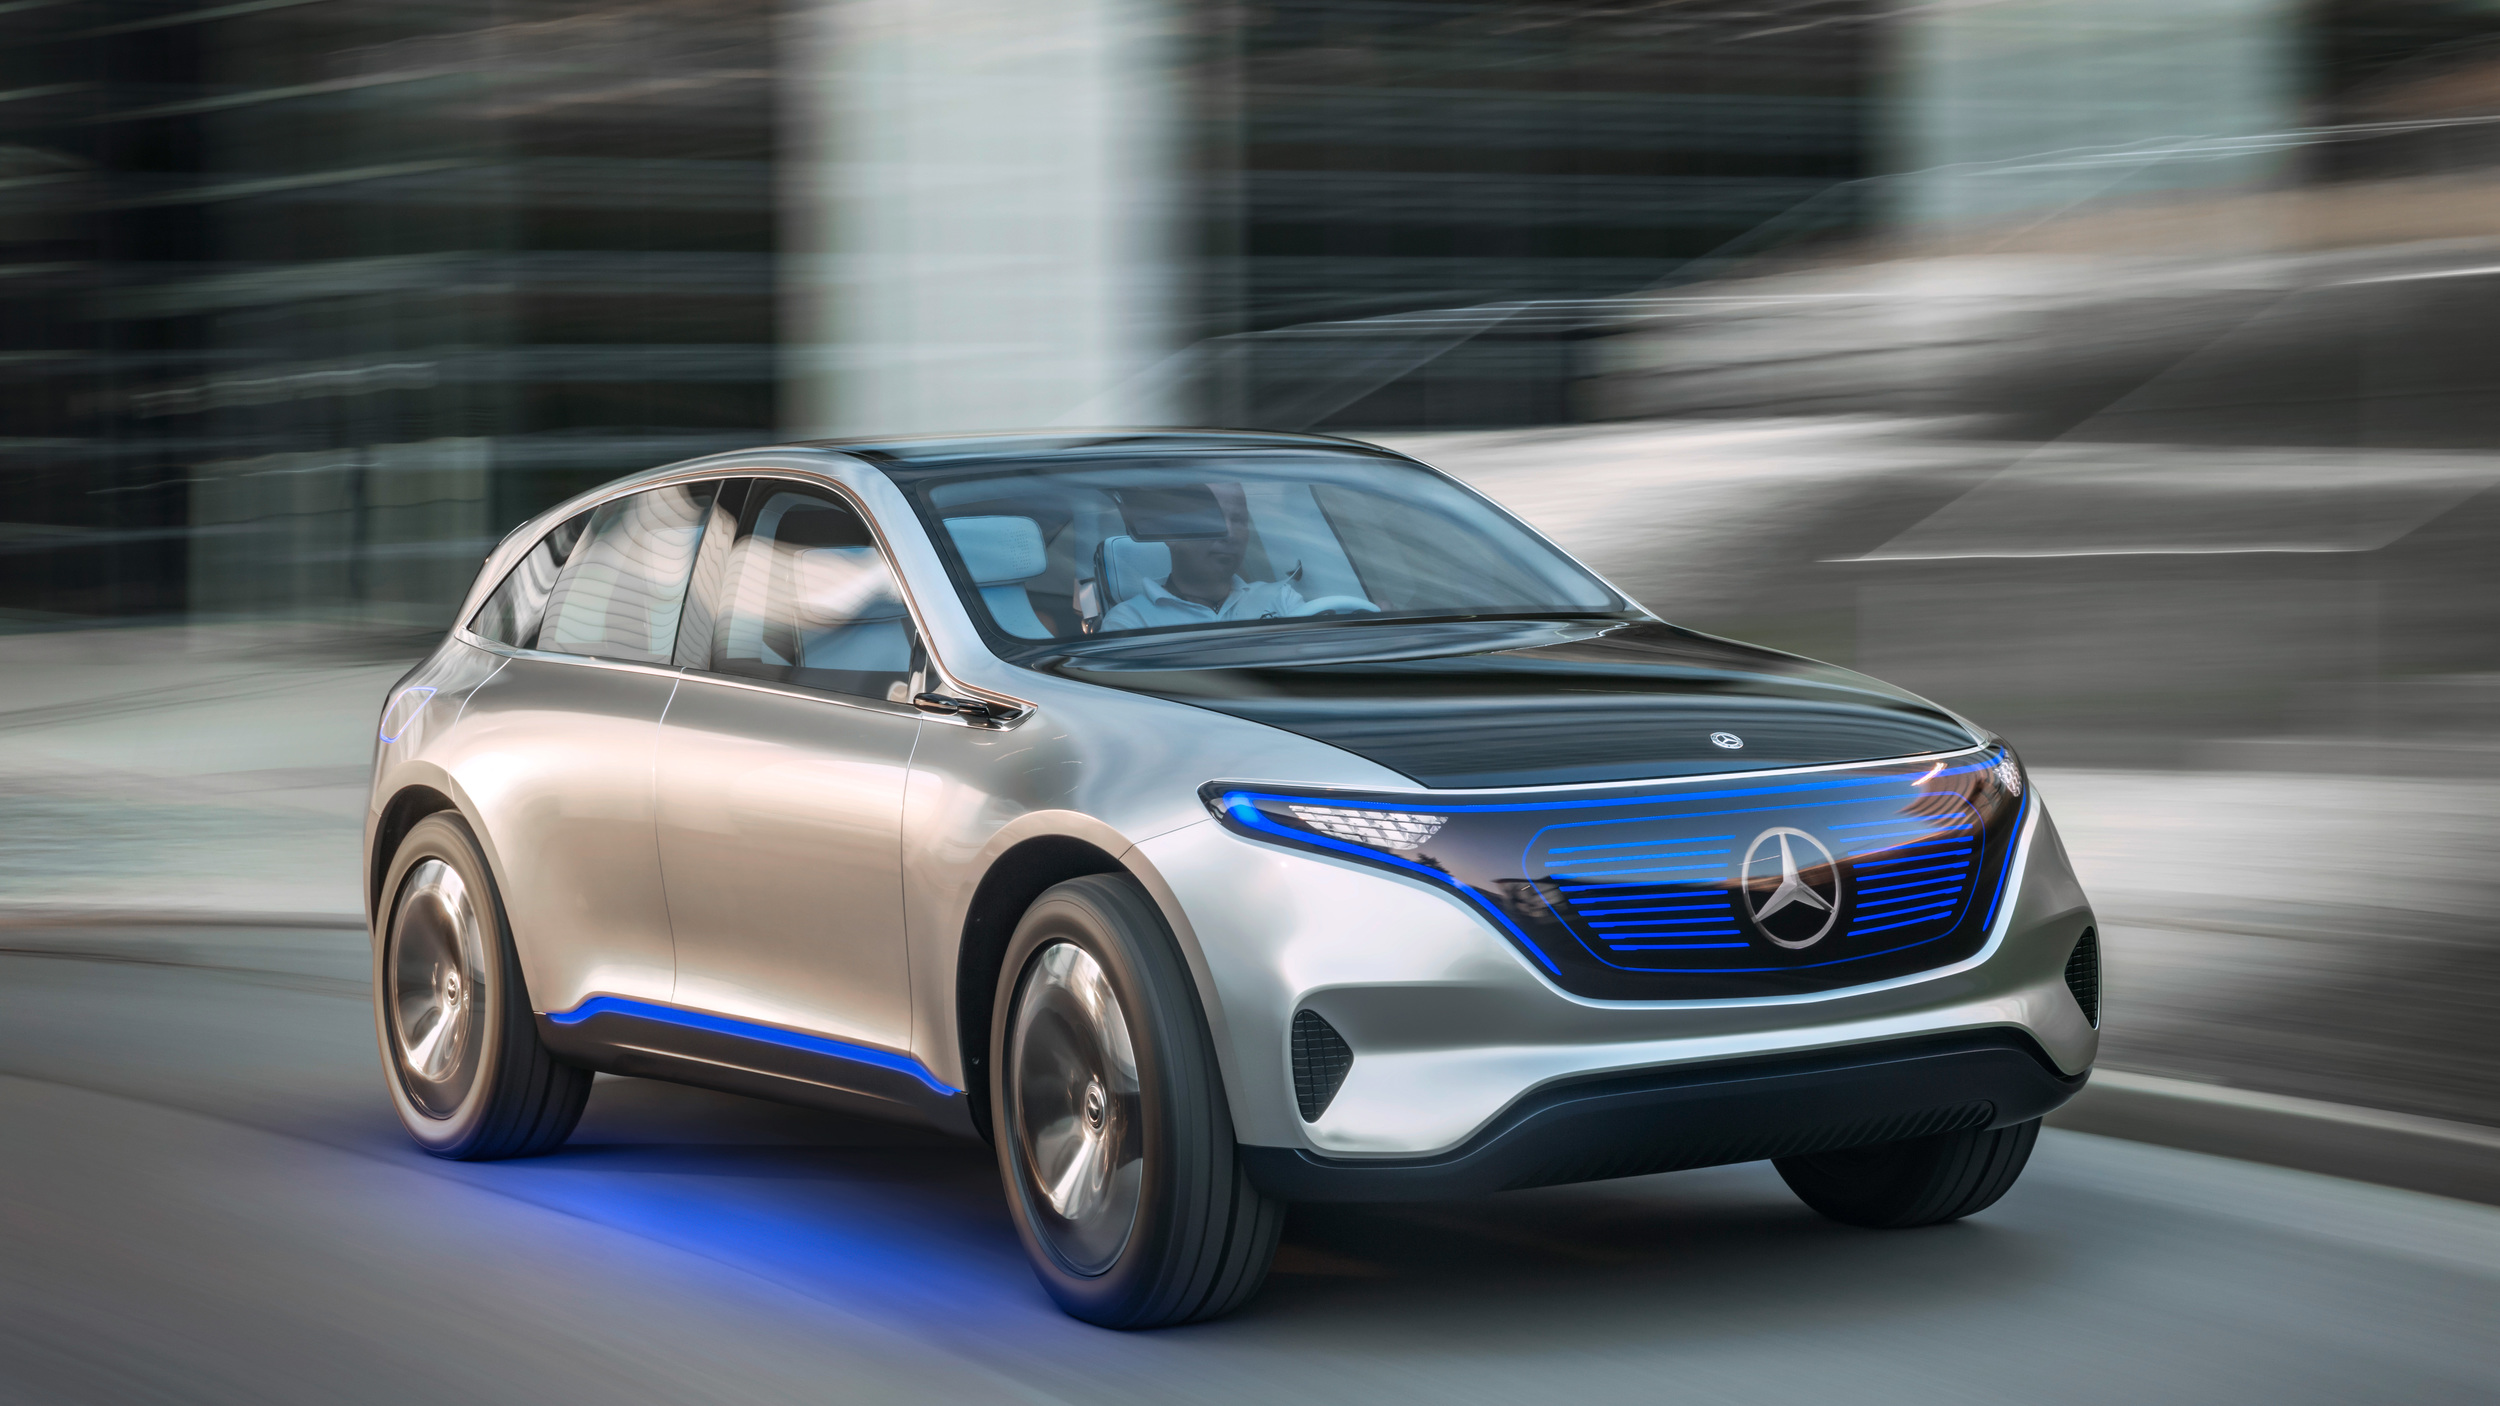 Will Electric Vehicles Open Up Car Design